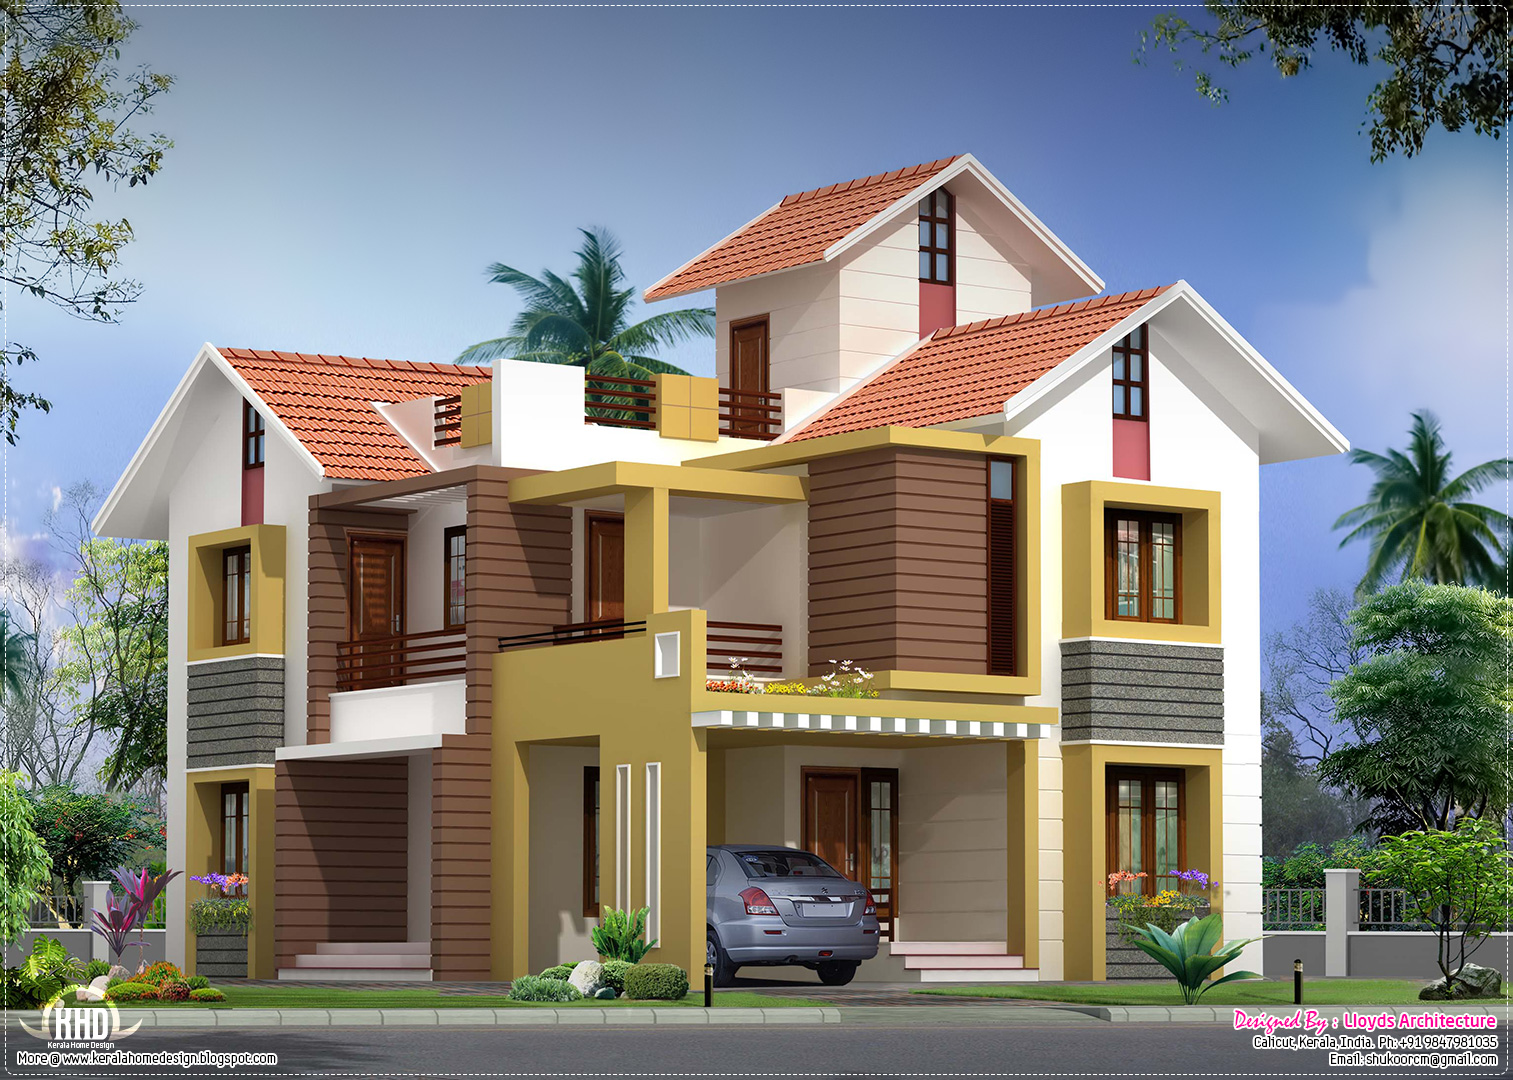 detail of this house ground floor 1154 sq ft first floor 846 sq ft ...